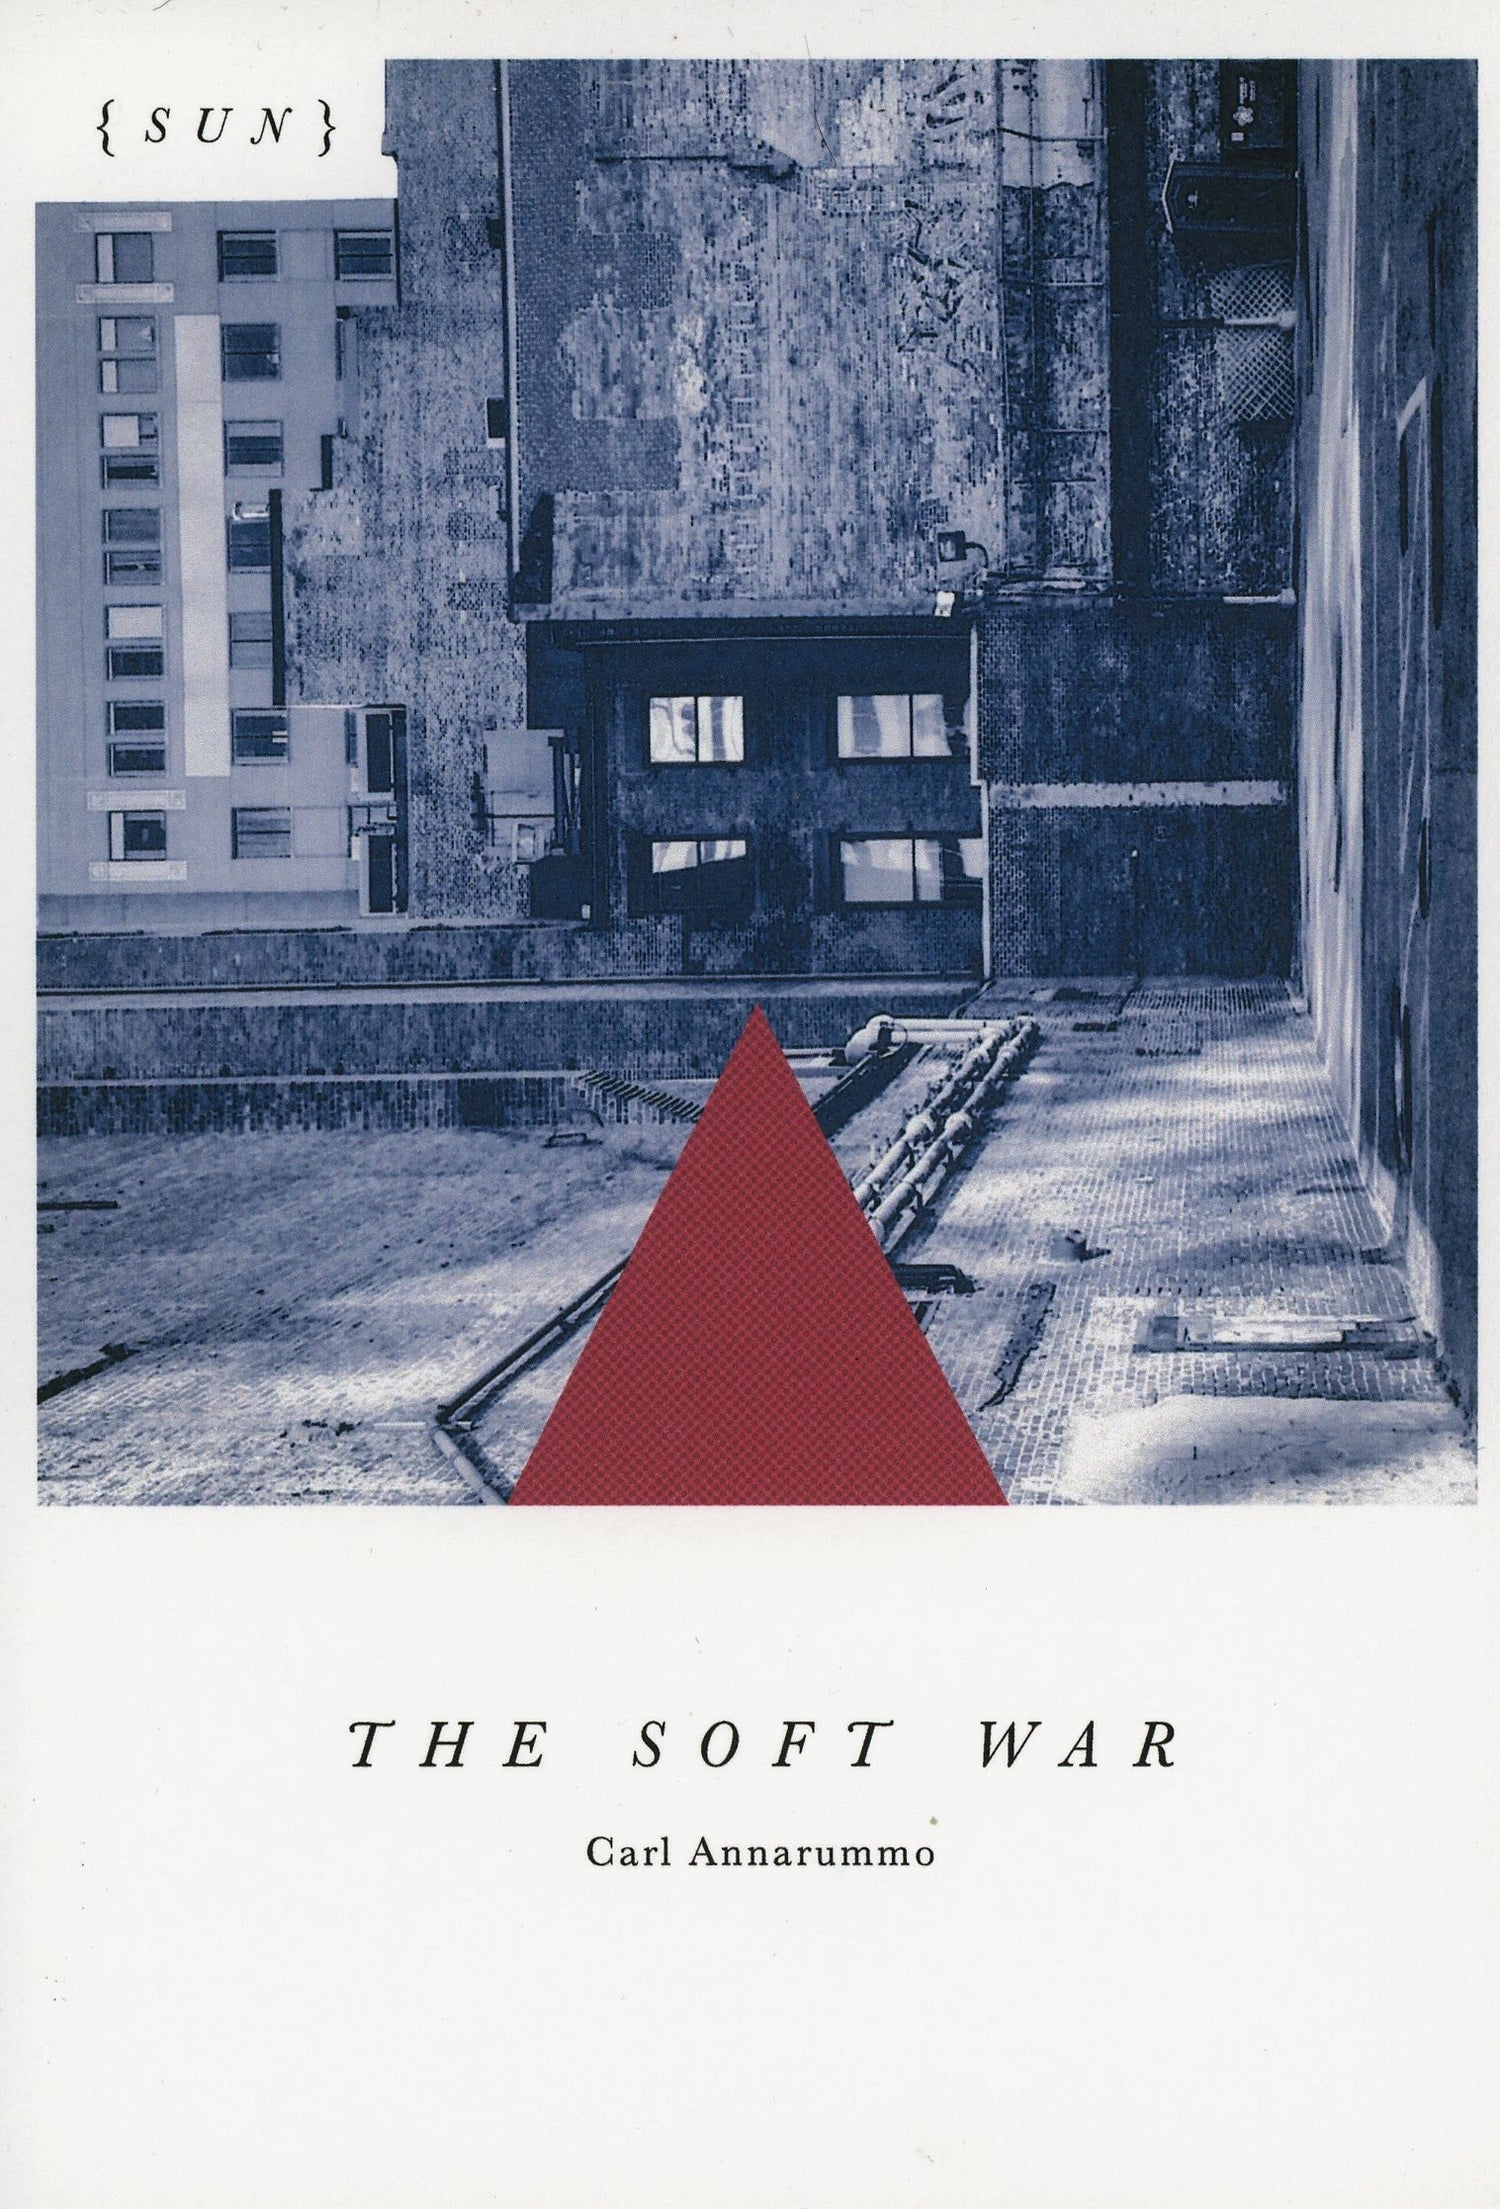 Image of The Soft War by Carl Annarummo